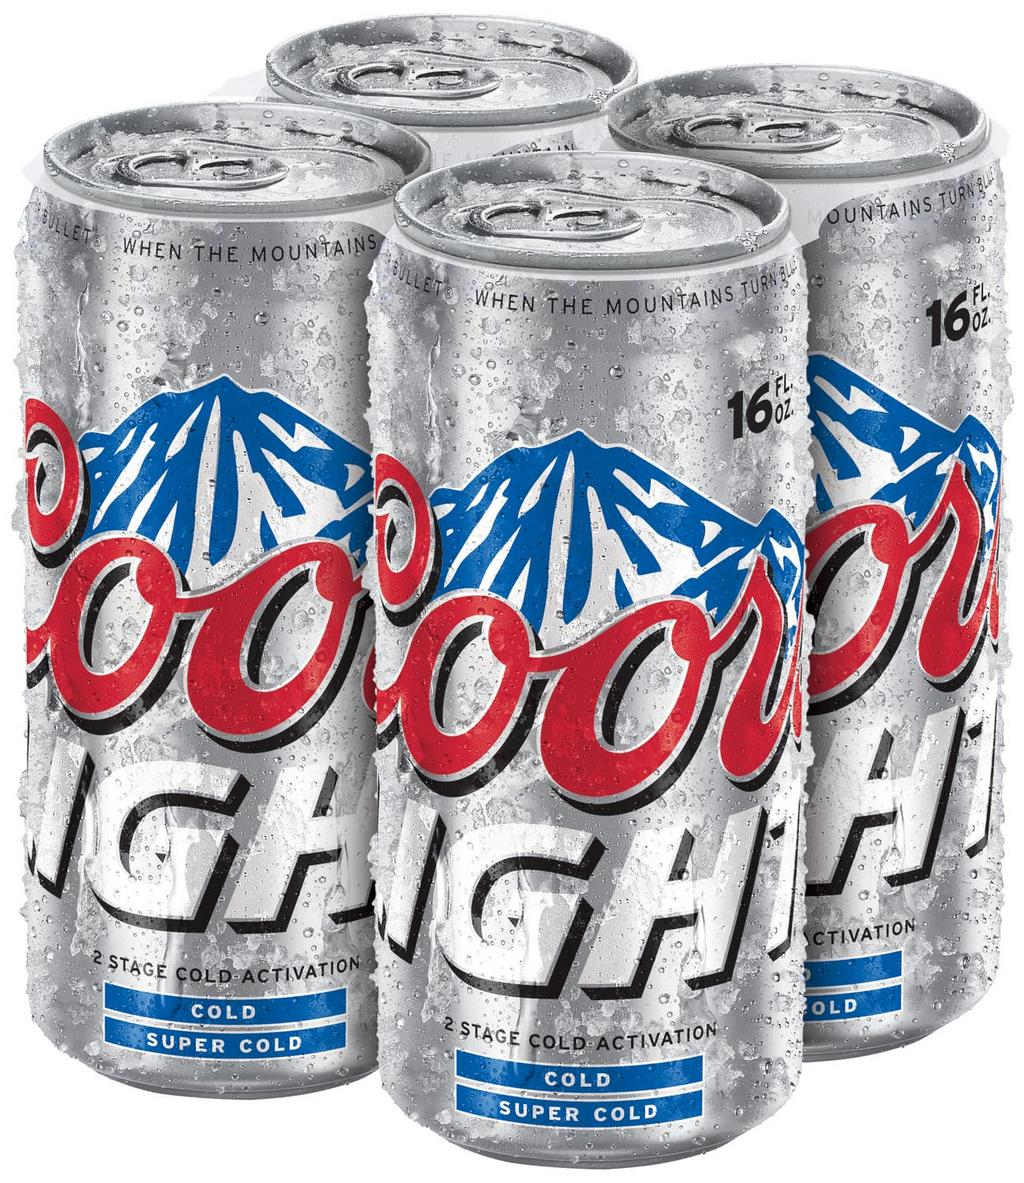 Coors Light Will Branch Out Next Year With A Citrus Flavored Summer Beer Following